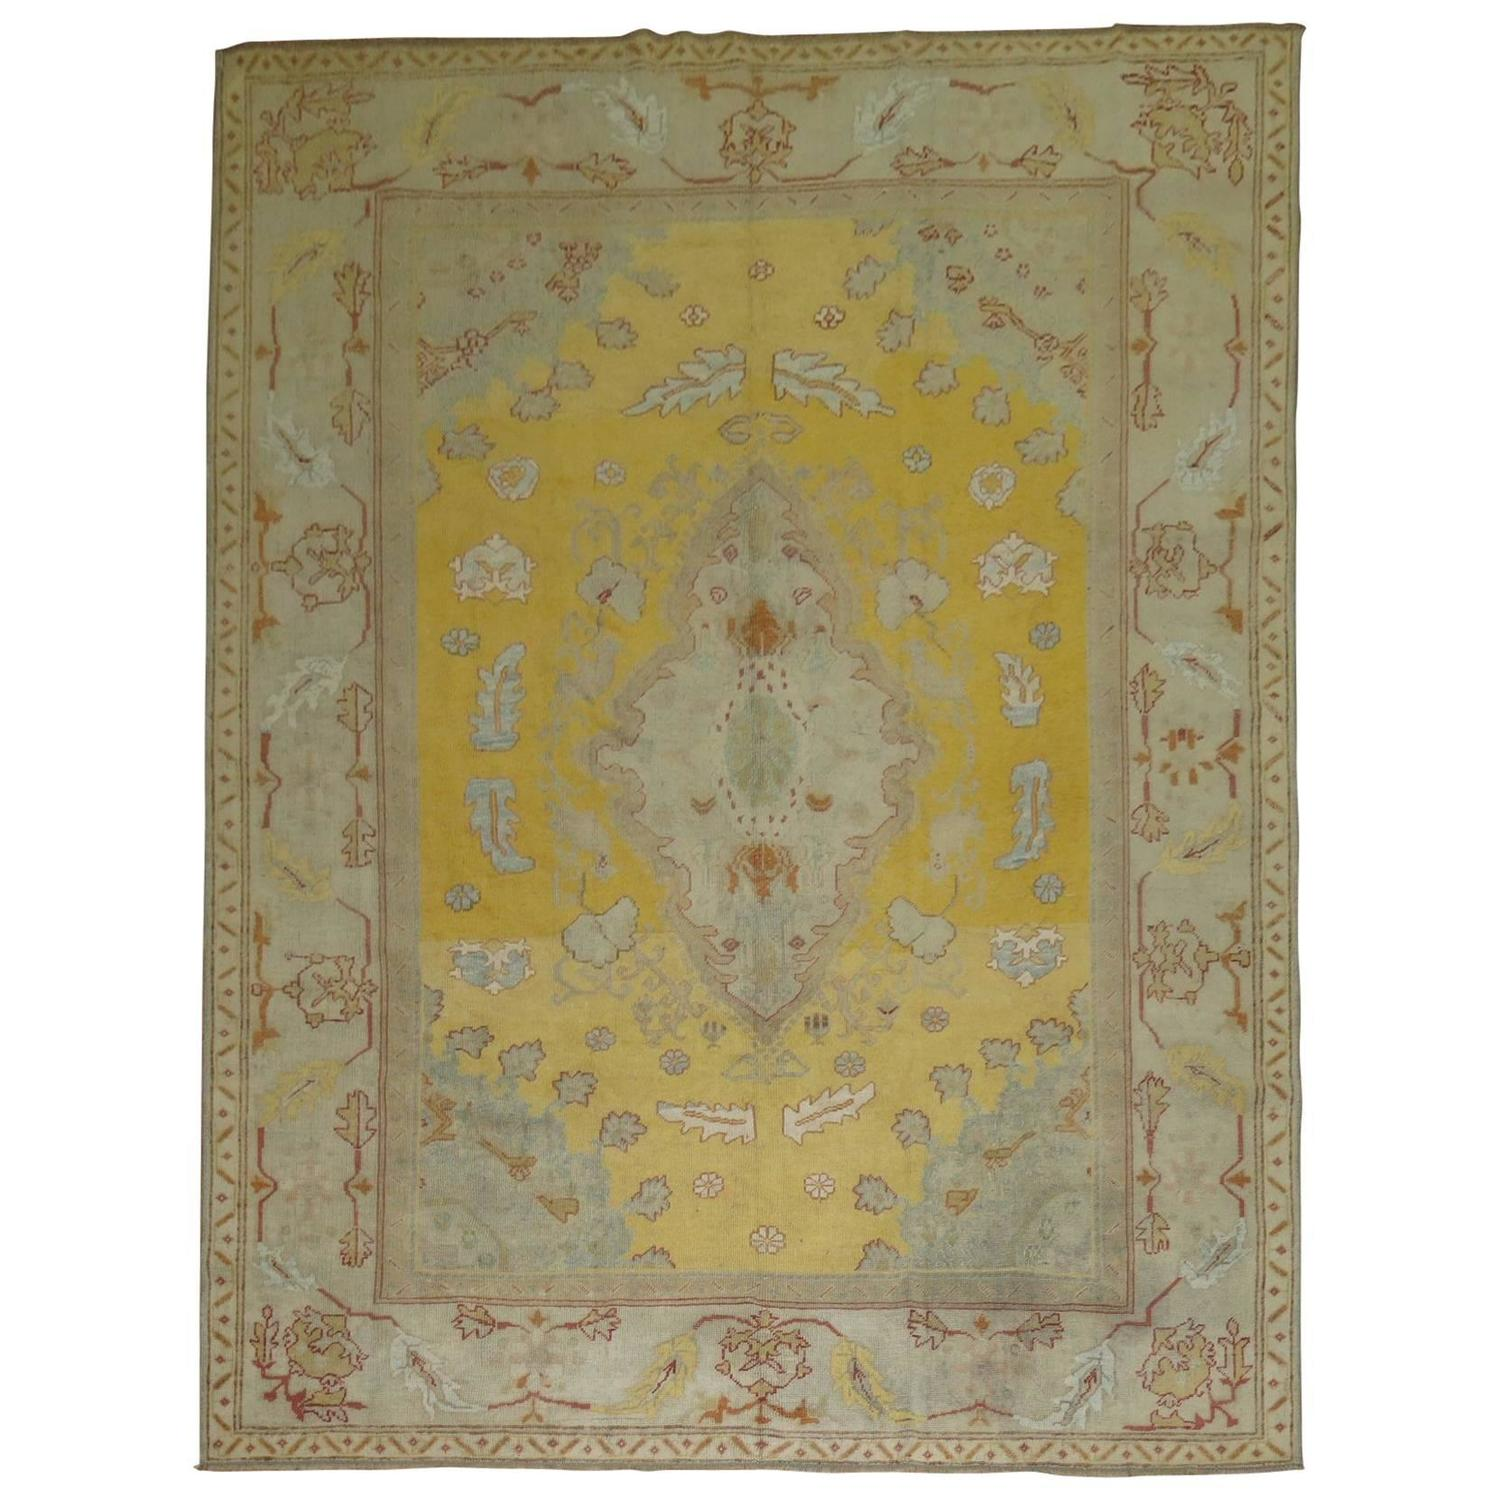 Turkish Ground Rug: Yellow Field Antique Oushak Rug For Sale At 1stdibs